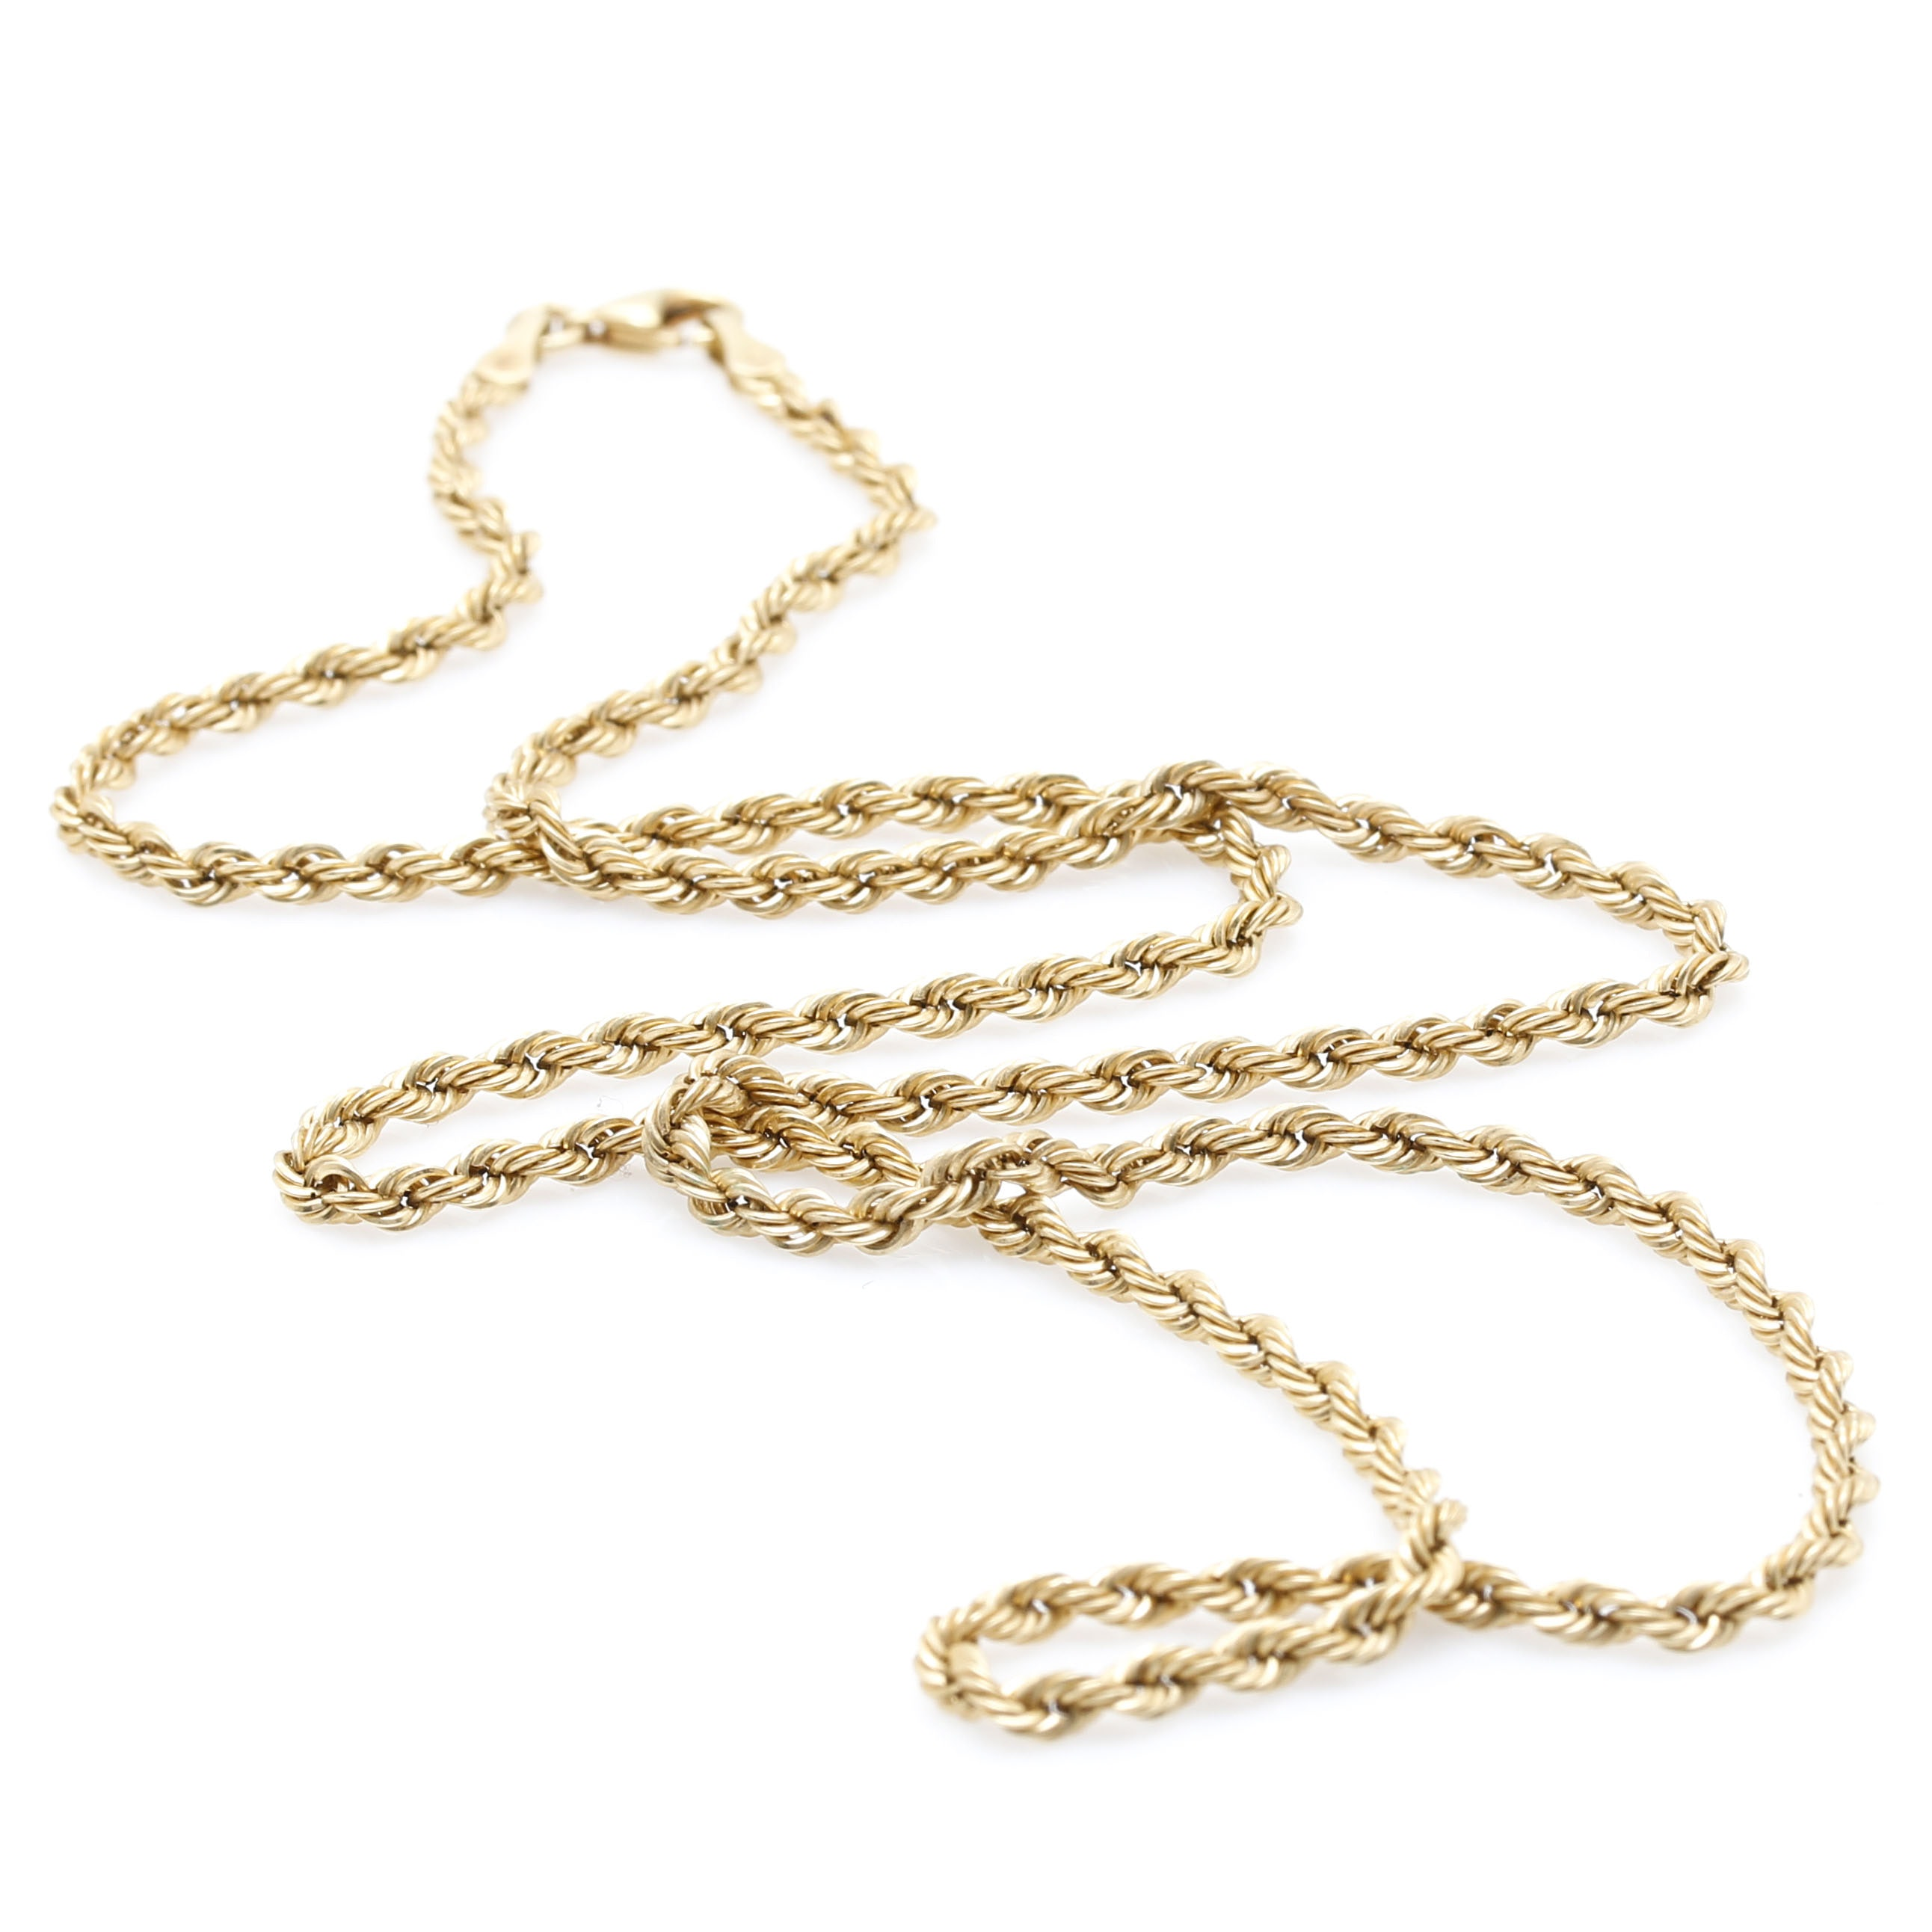 Milor 18K Yellow Gold Twisted Rope Chain